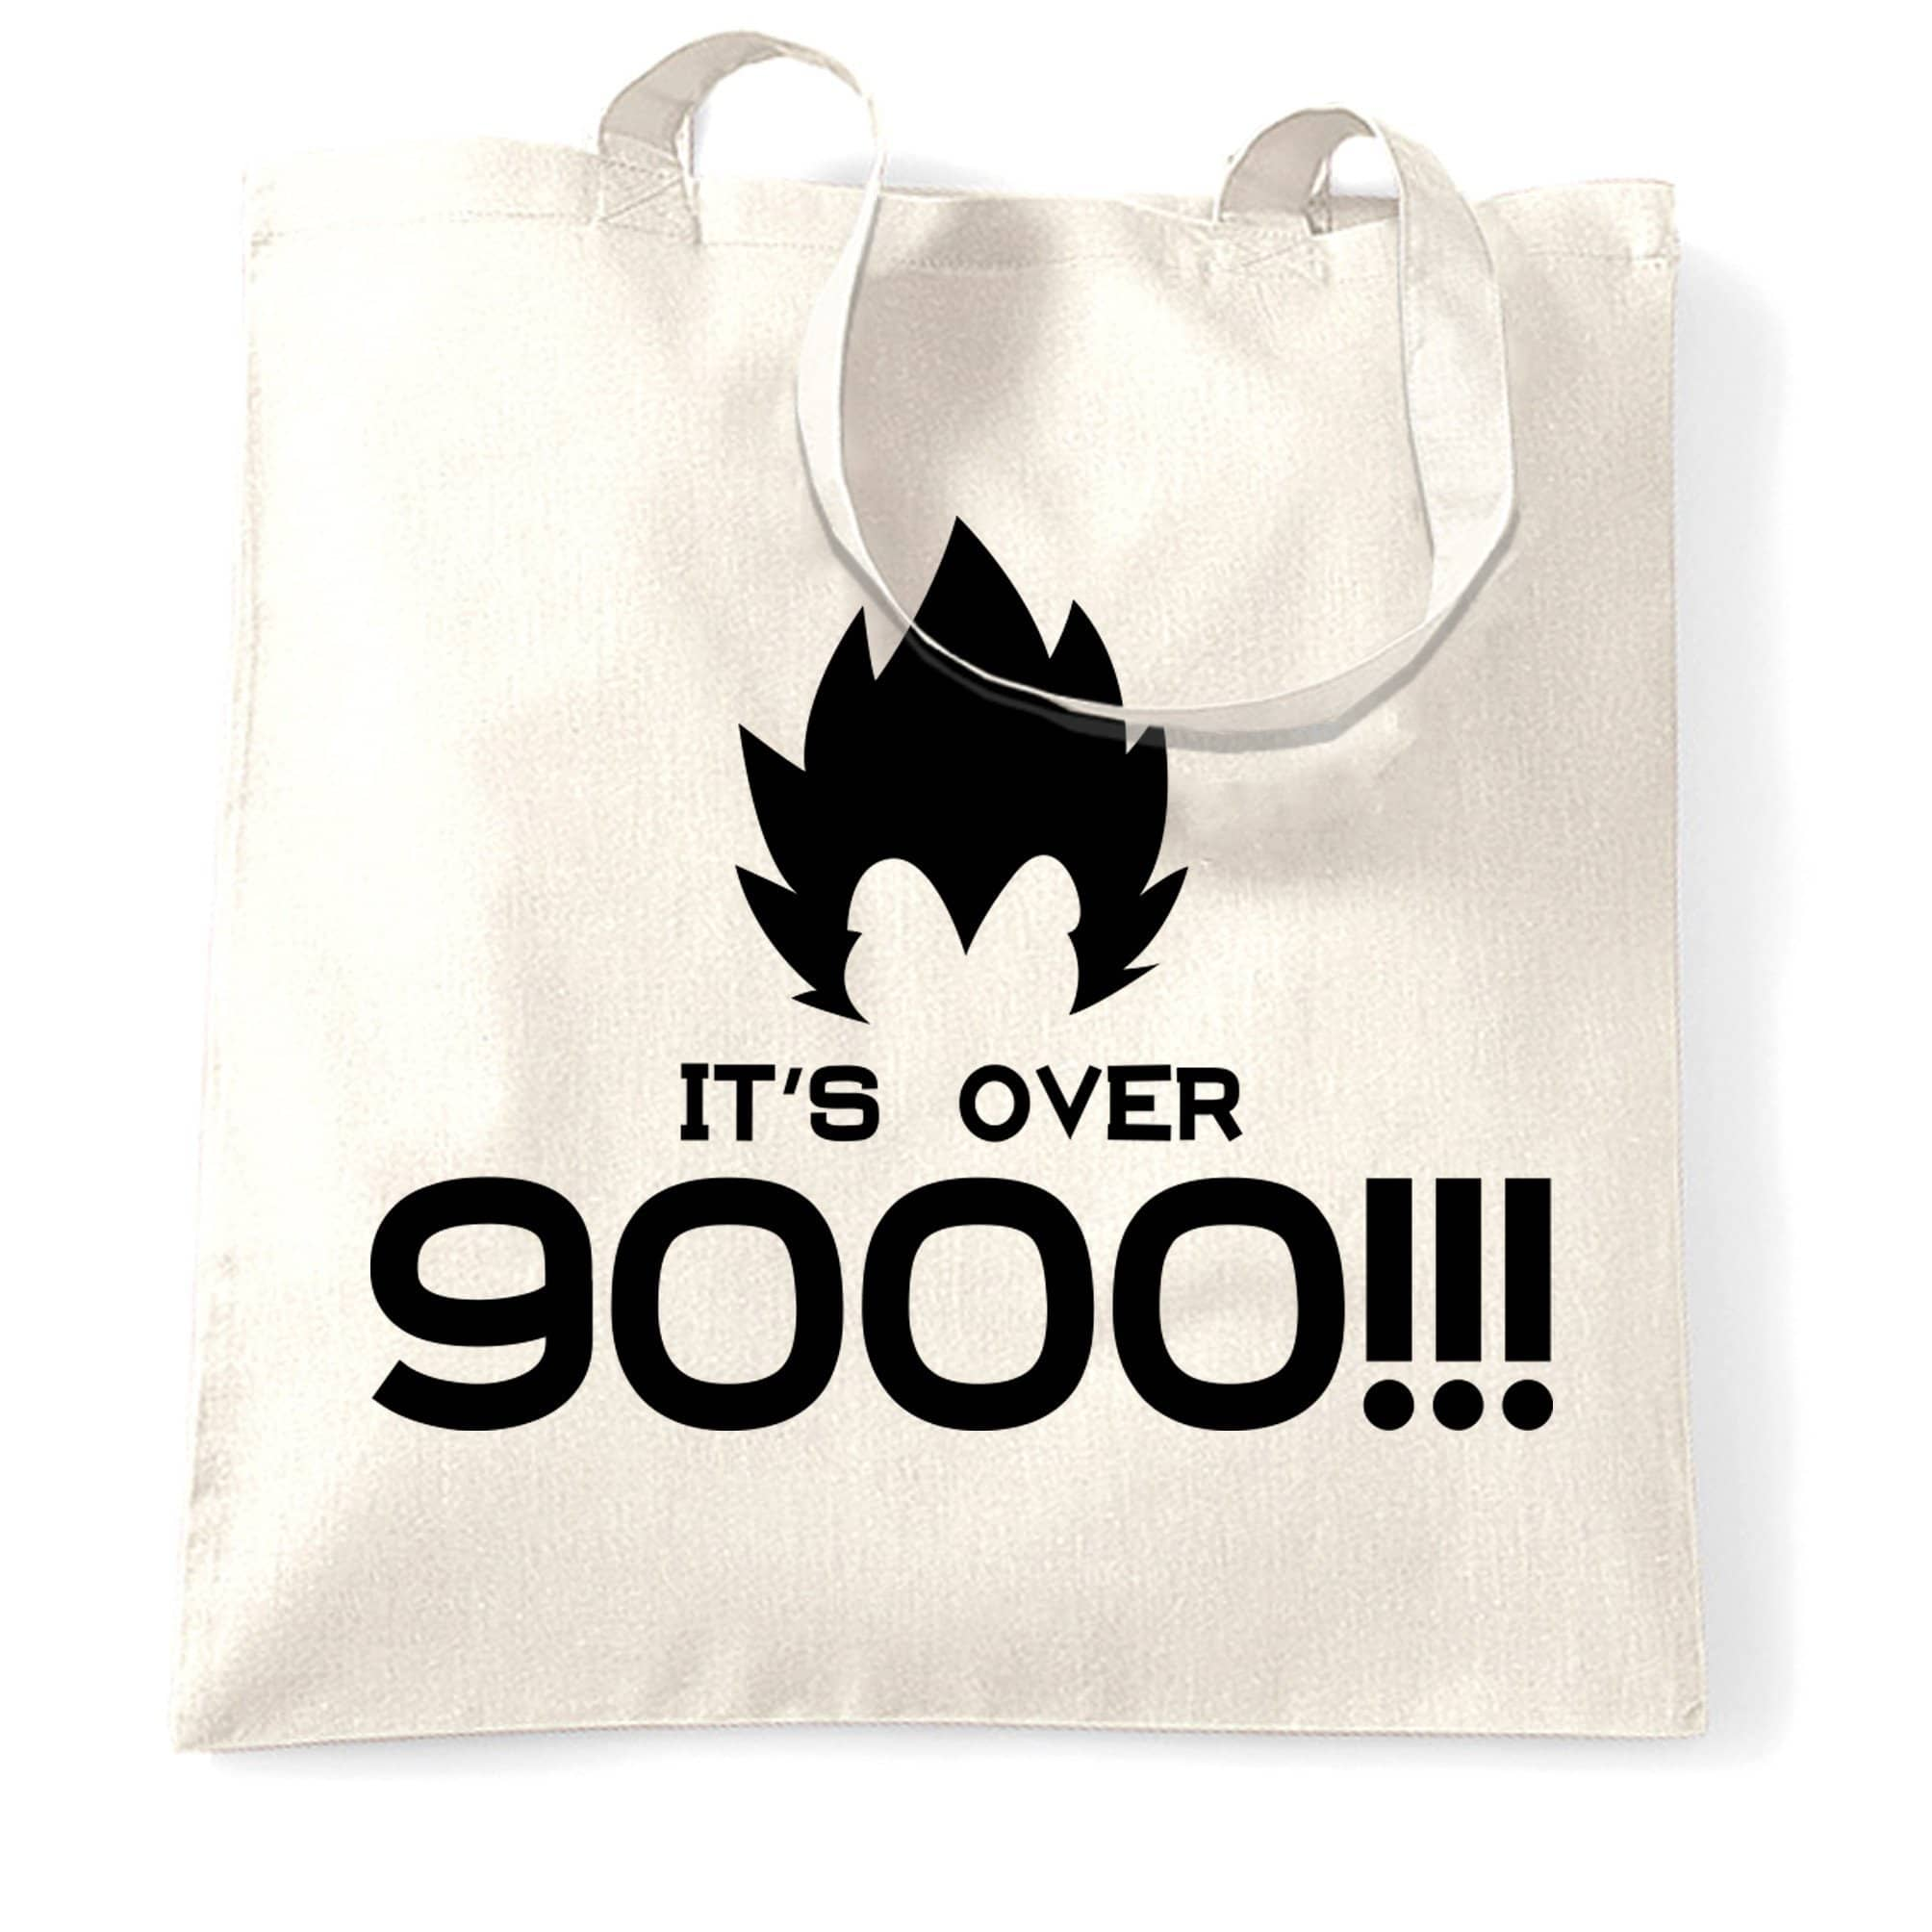 Novelty Anime Parody Tote Bag It's Over 9000!! Slogan